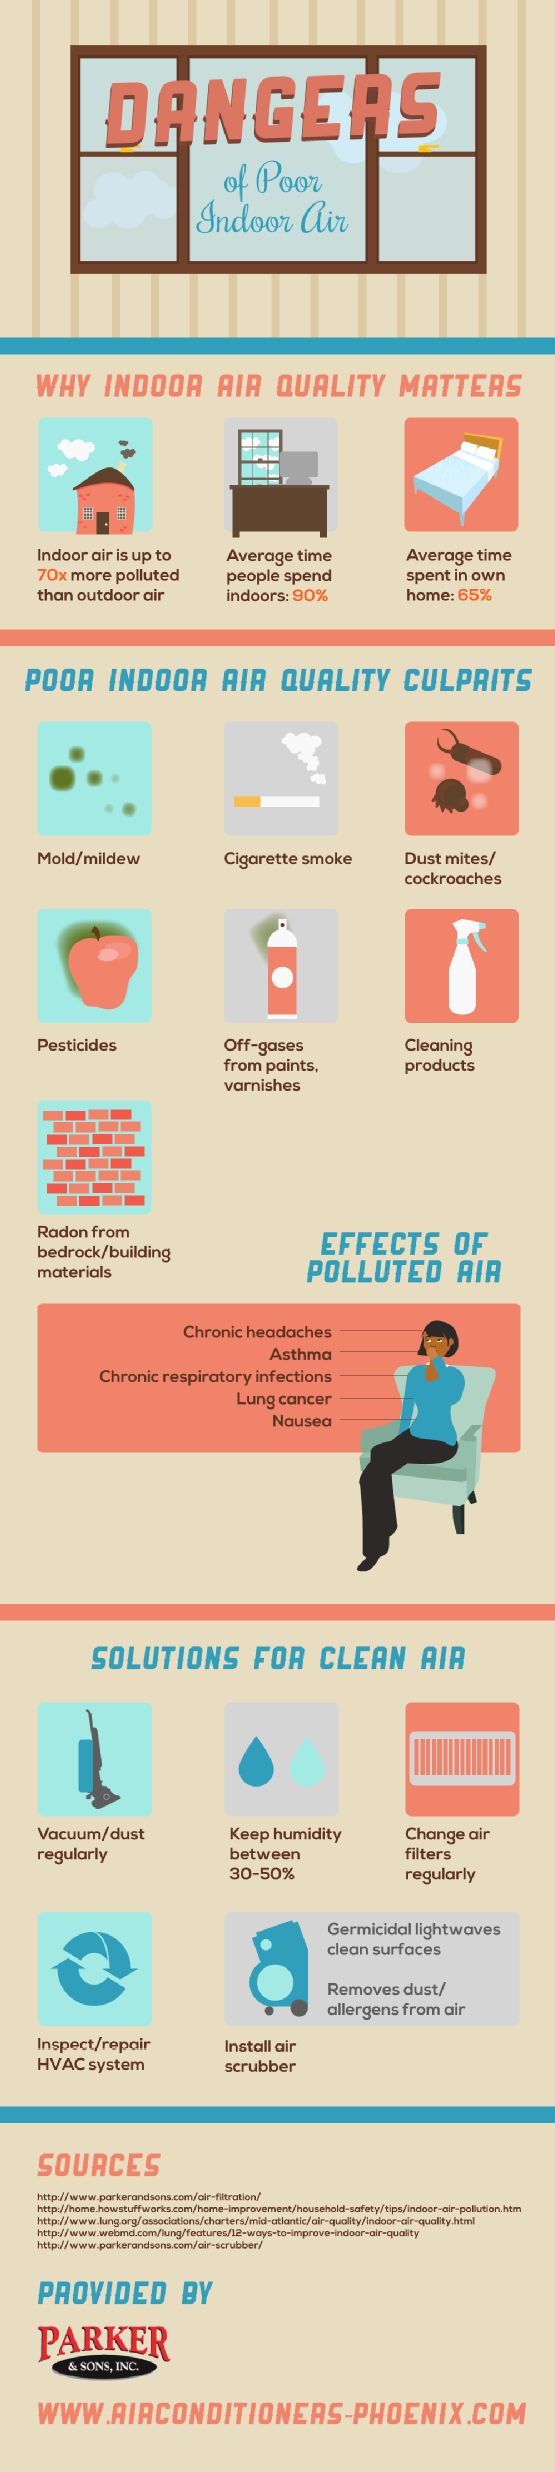 Mold, cigarette smoke, dust mites, pesticides, cleaning products, and even radon from building materials can all negatively affect the air quality in a home. This infographic from an AC repair company in Phoenix provides more air quality info.